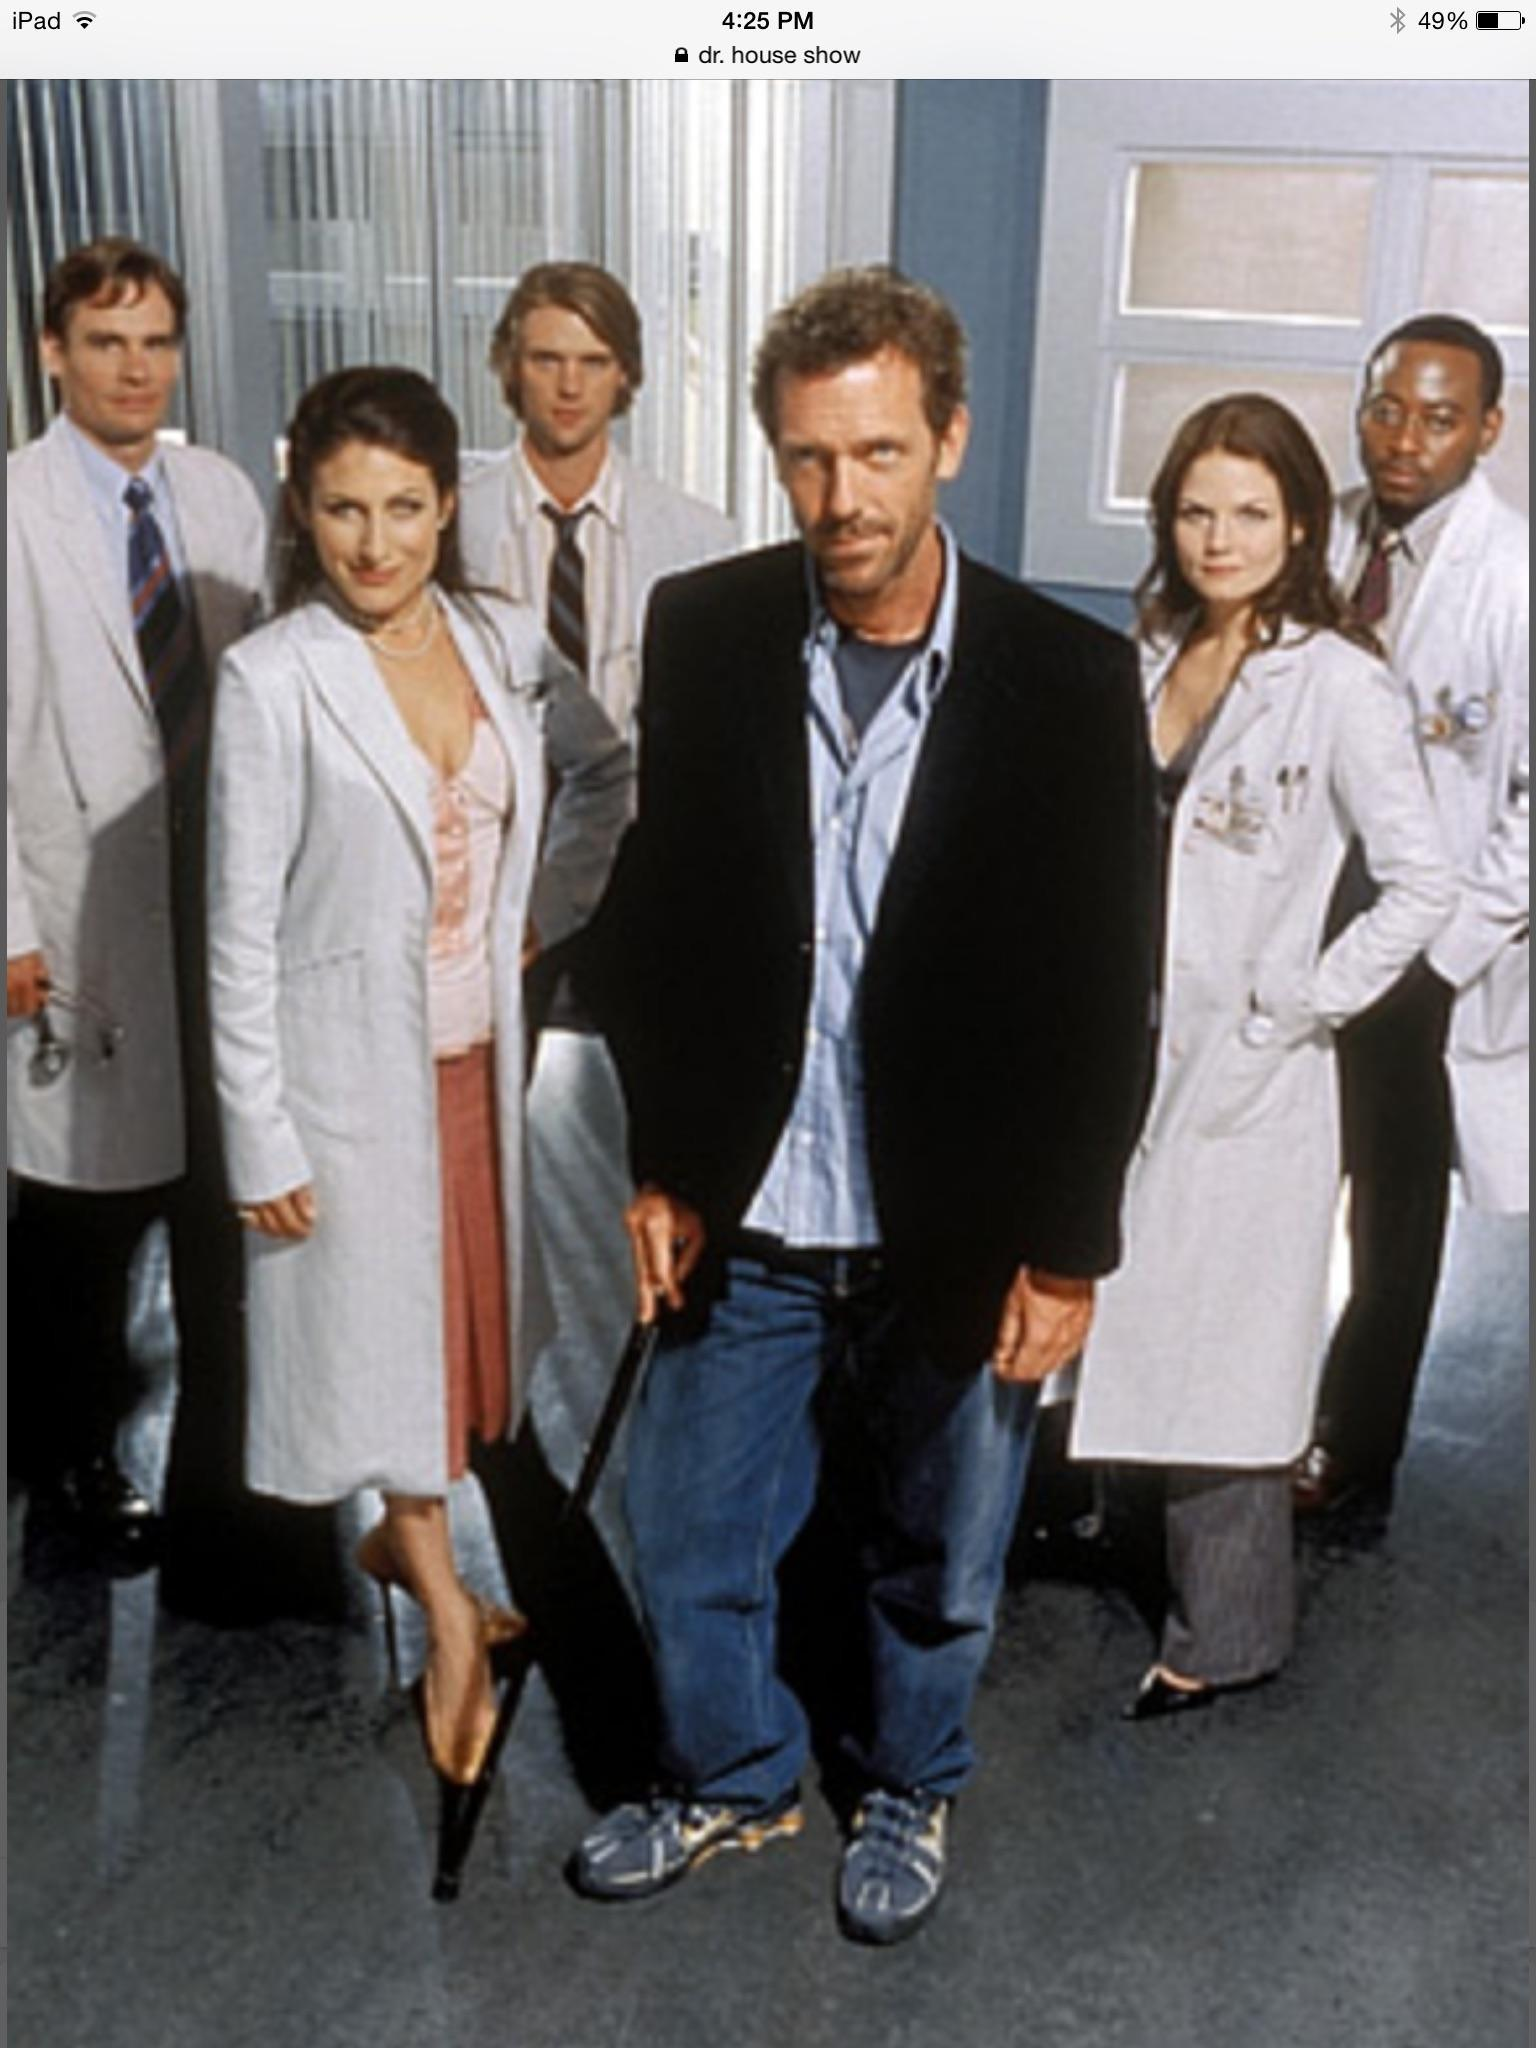 What Dr.house charcter are you?